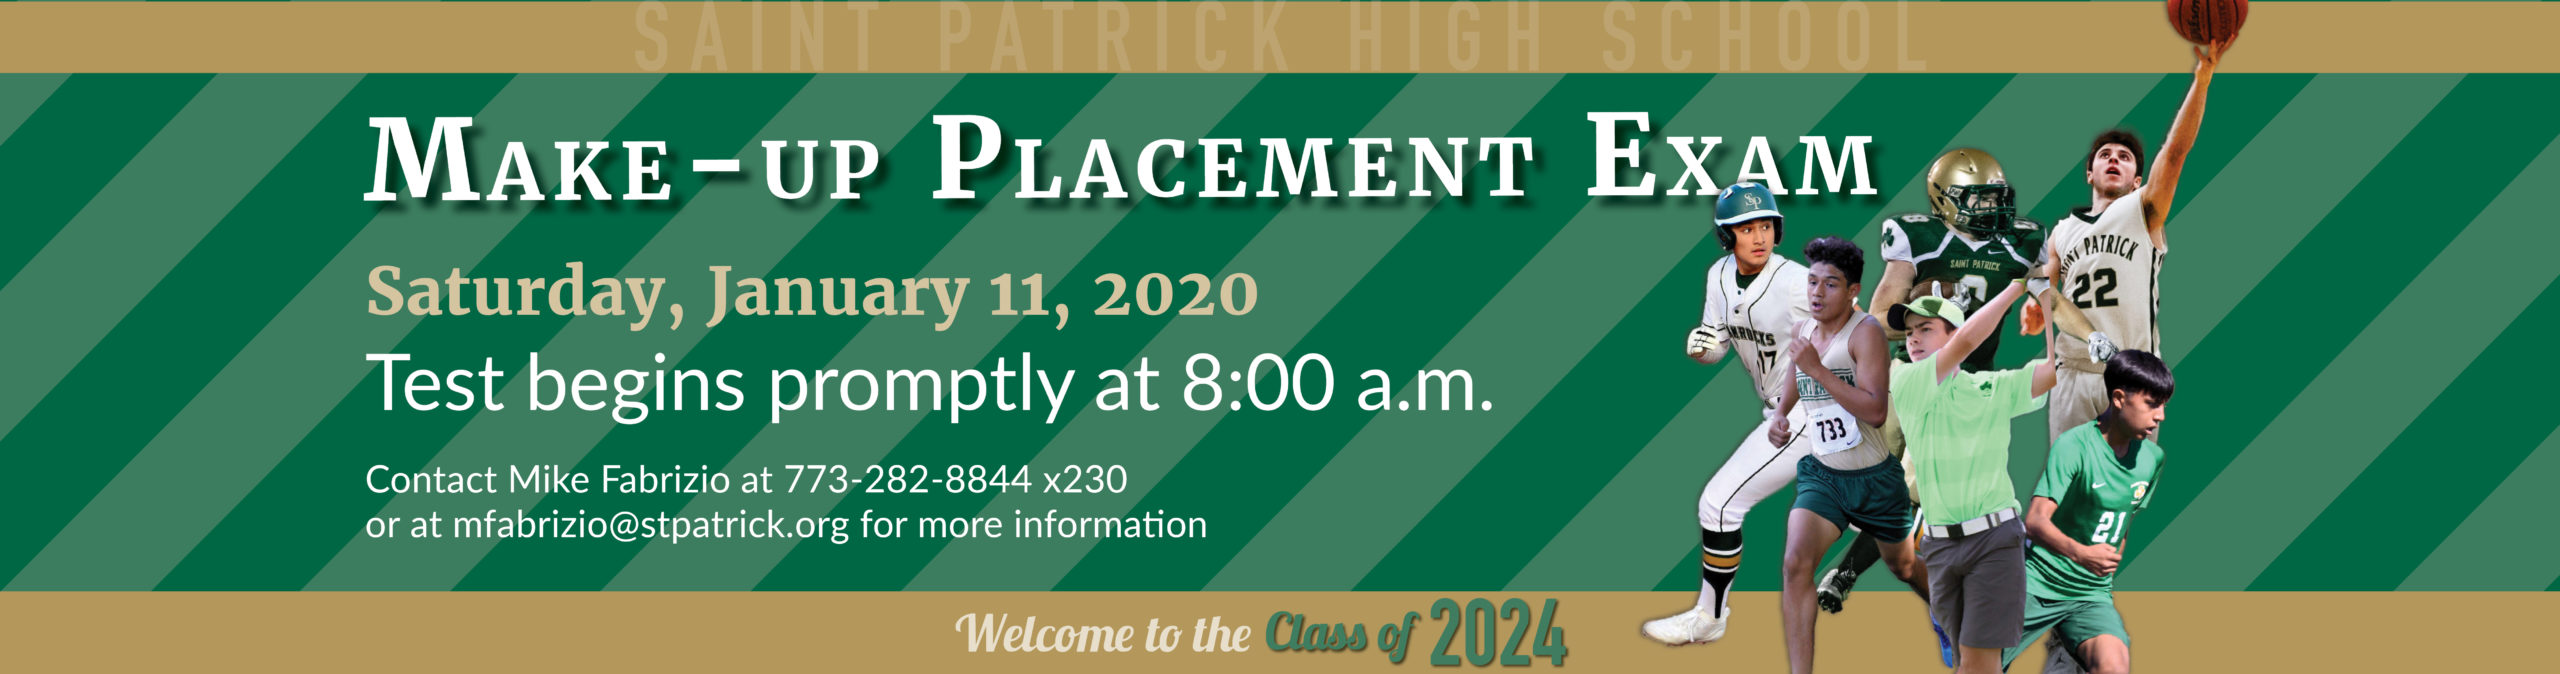 Make-up Placement Exam 2020